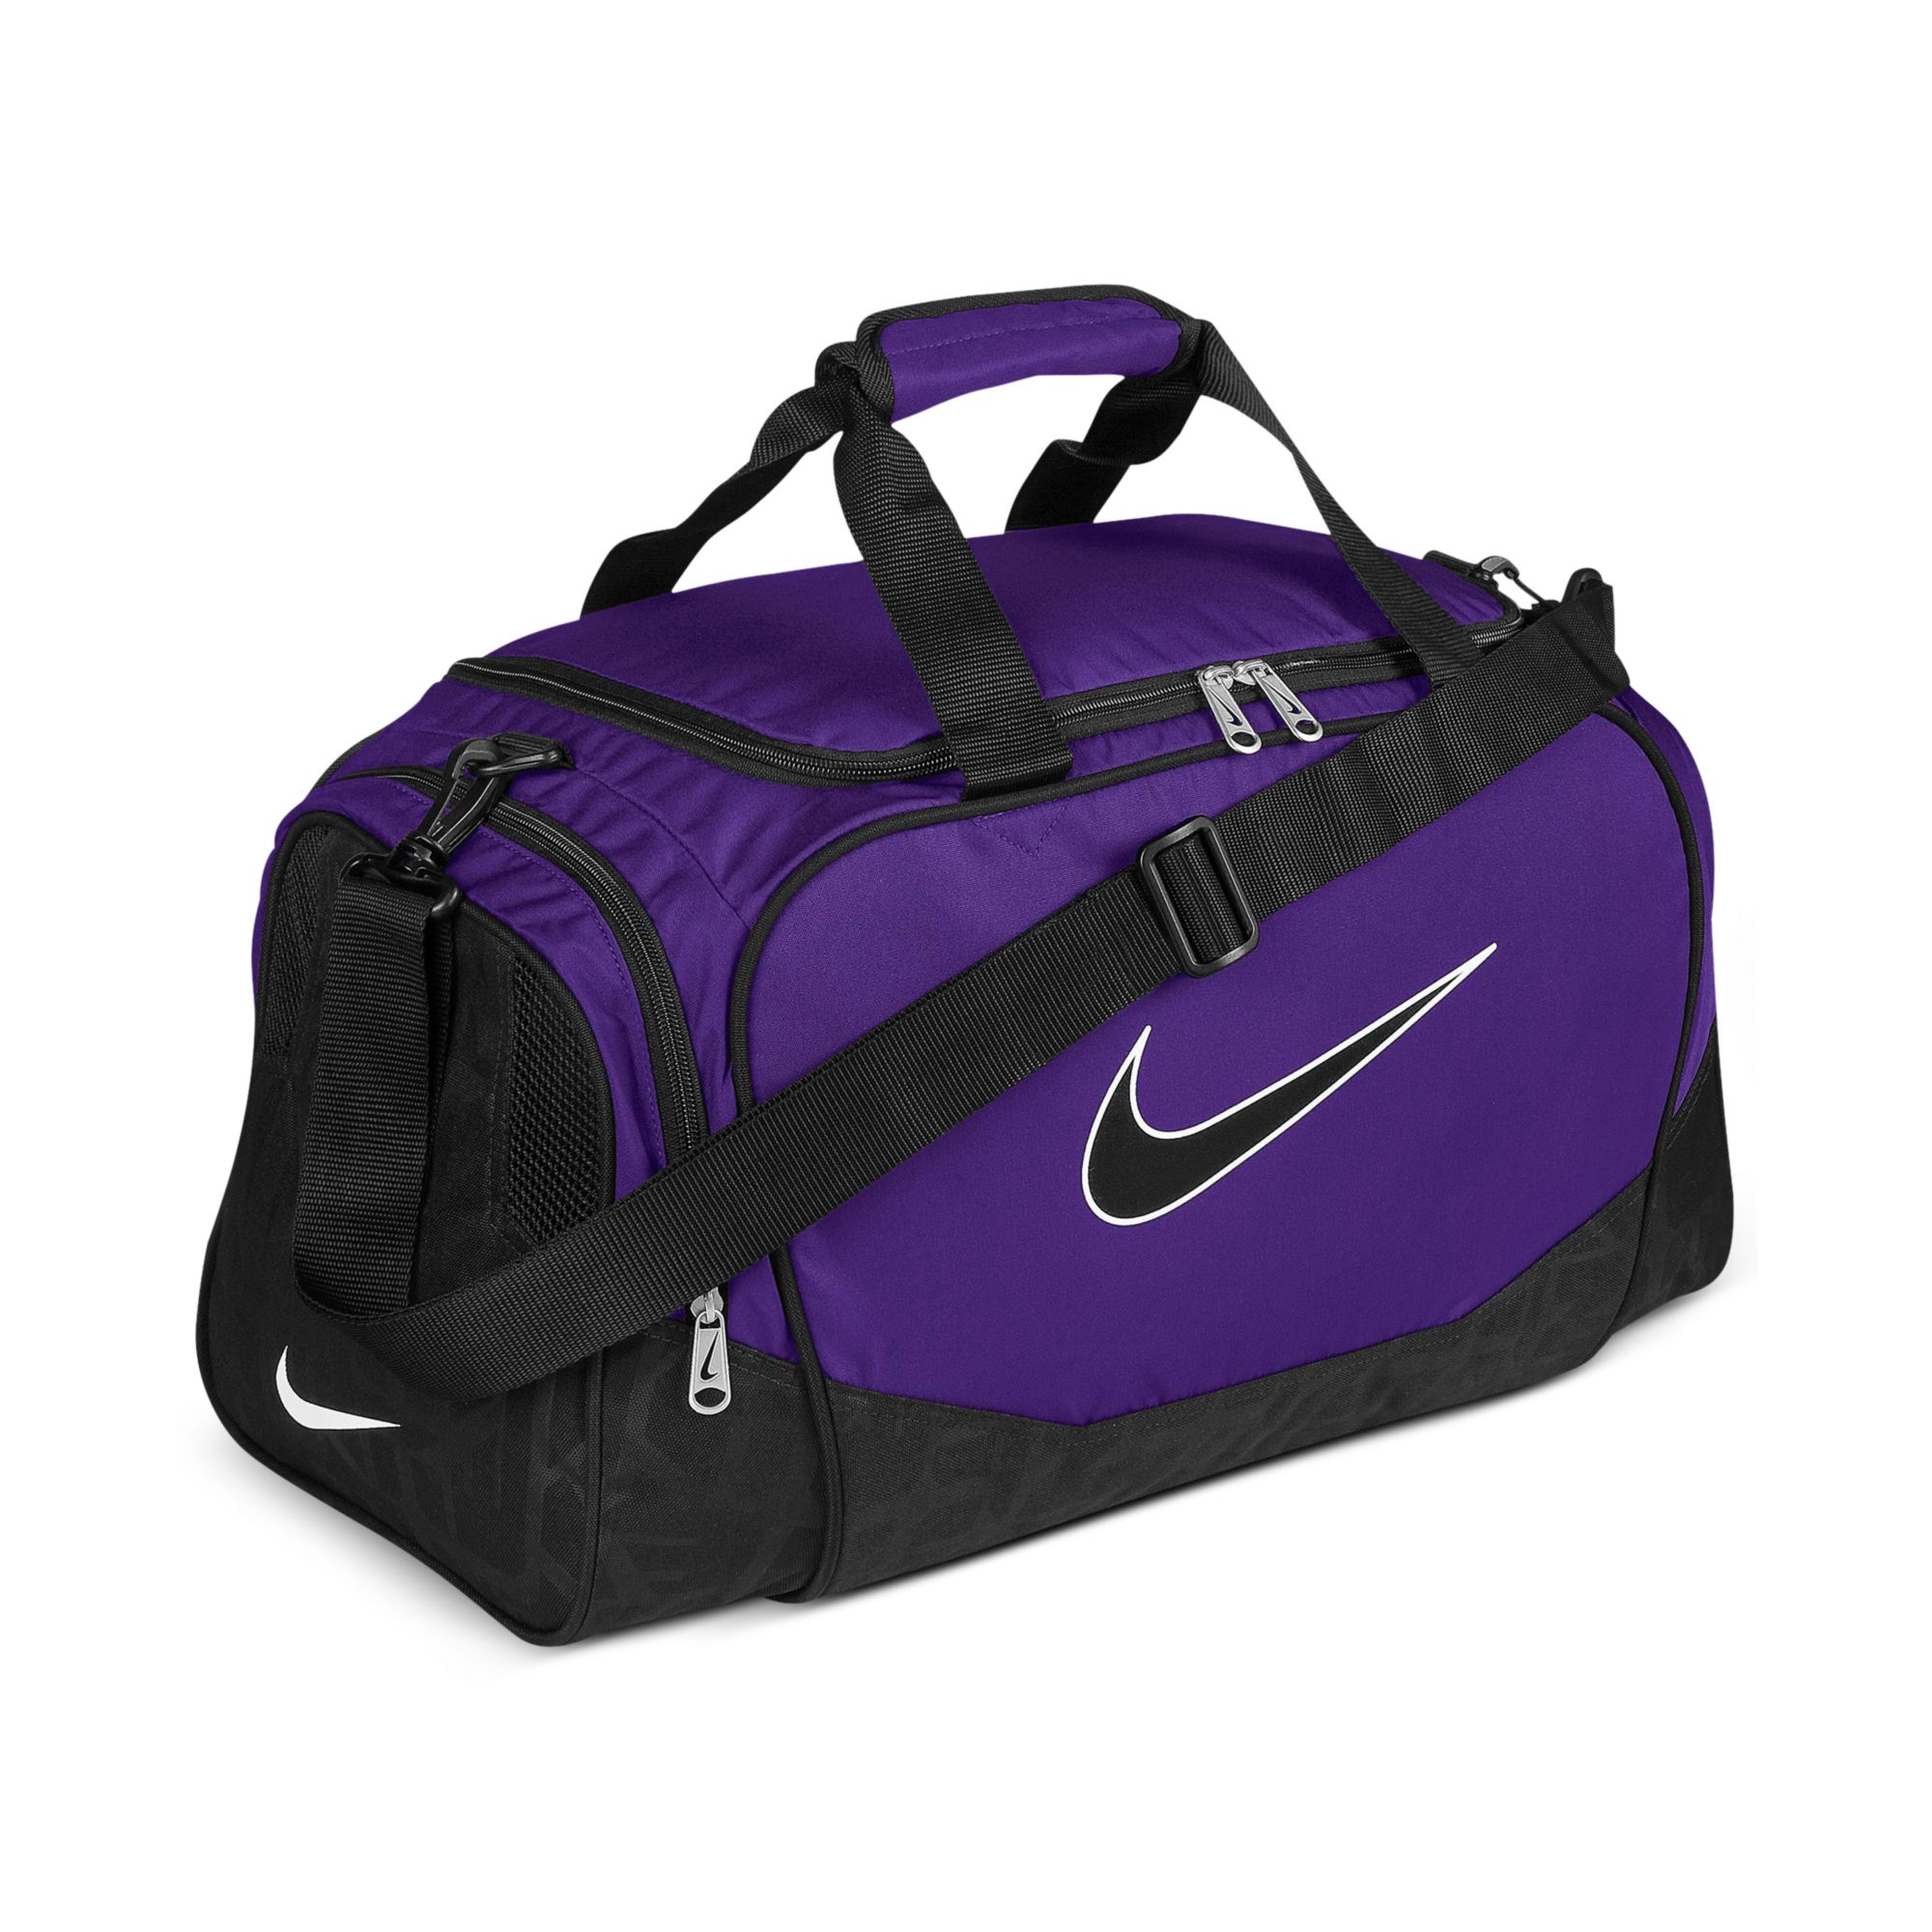 f3d06f3cc33f Well-liked Lyst - Nike Small Duffle Bag in Purple for Men AR06